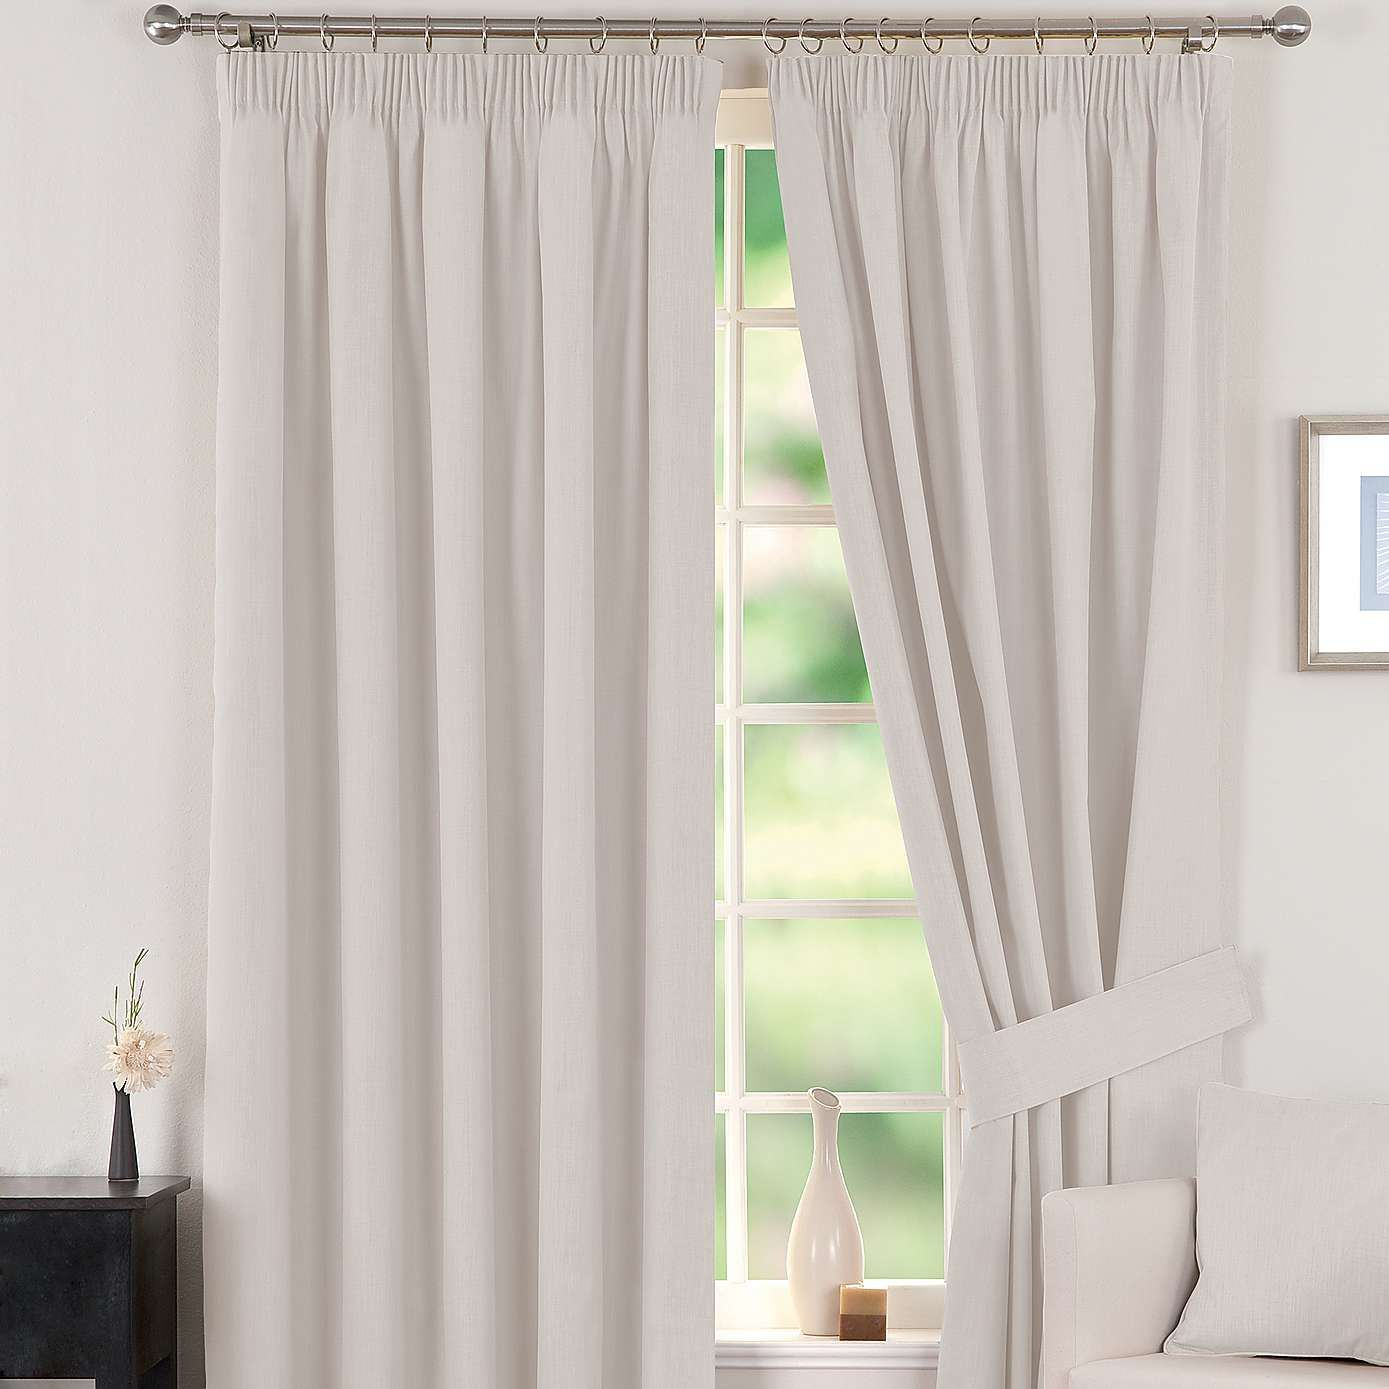 Natural Solar Blackout Curtains Dunelm £50 Full Width Nursery